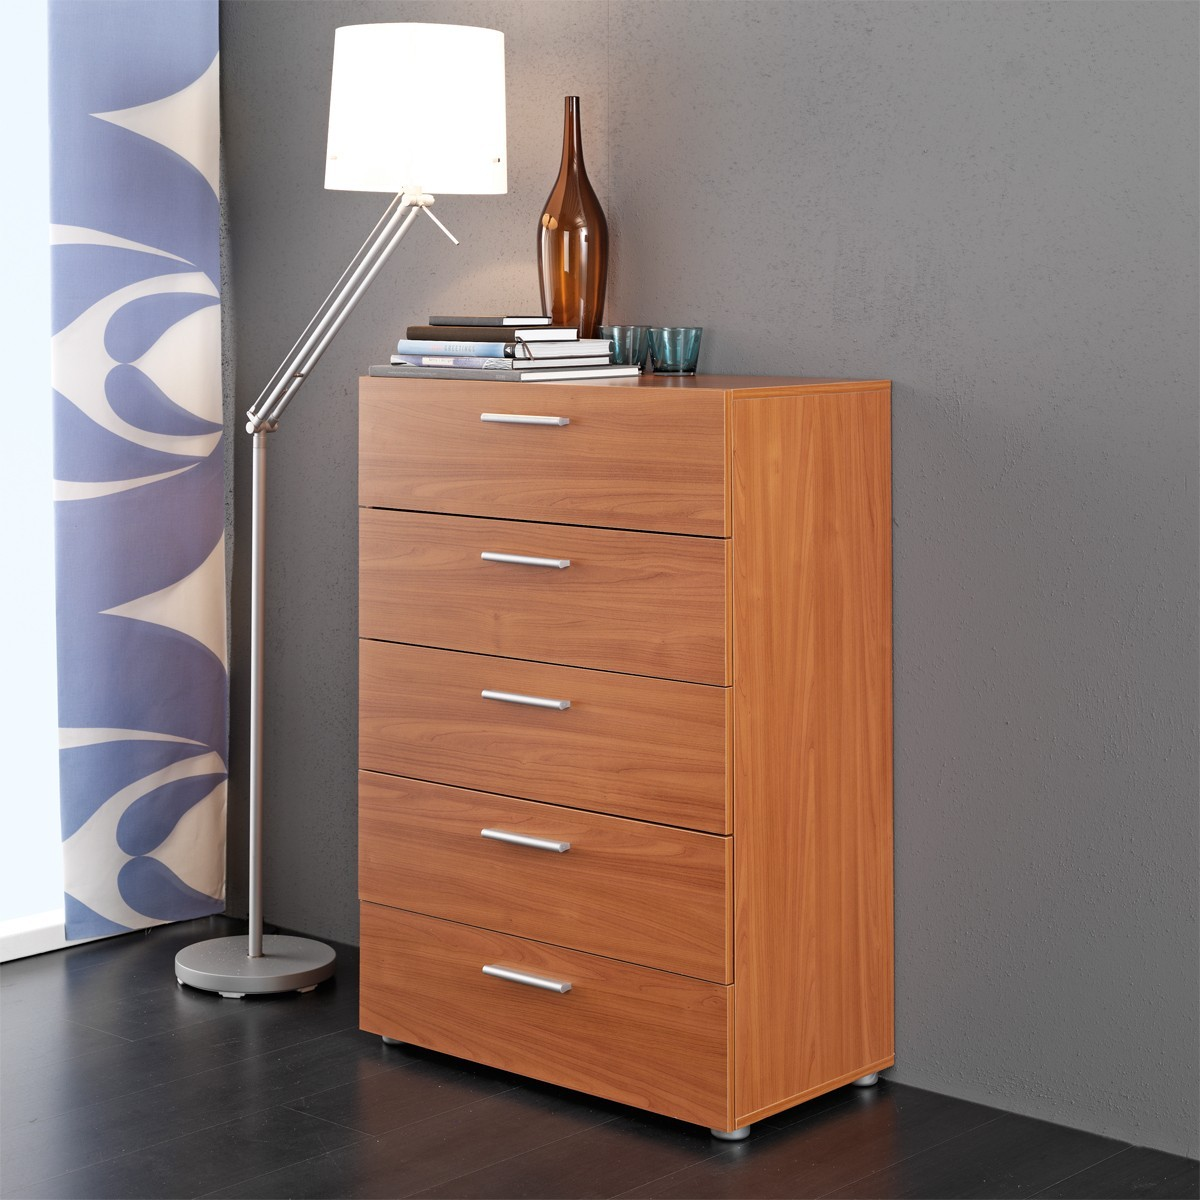 kirschbaum m bel magis in kirschbaum hifi m bel larisa in kirschbaum hifi sideboard nach ma. Black Bedroom Furniture Sets. Home Design Ideas